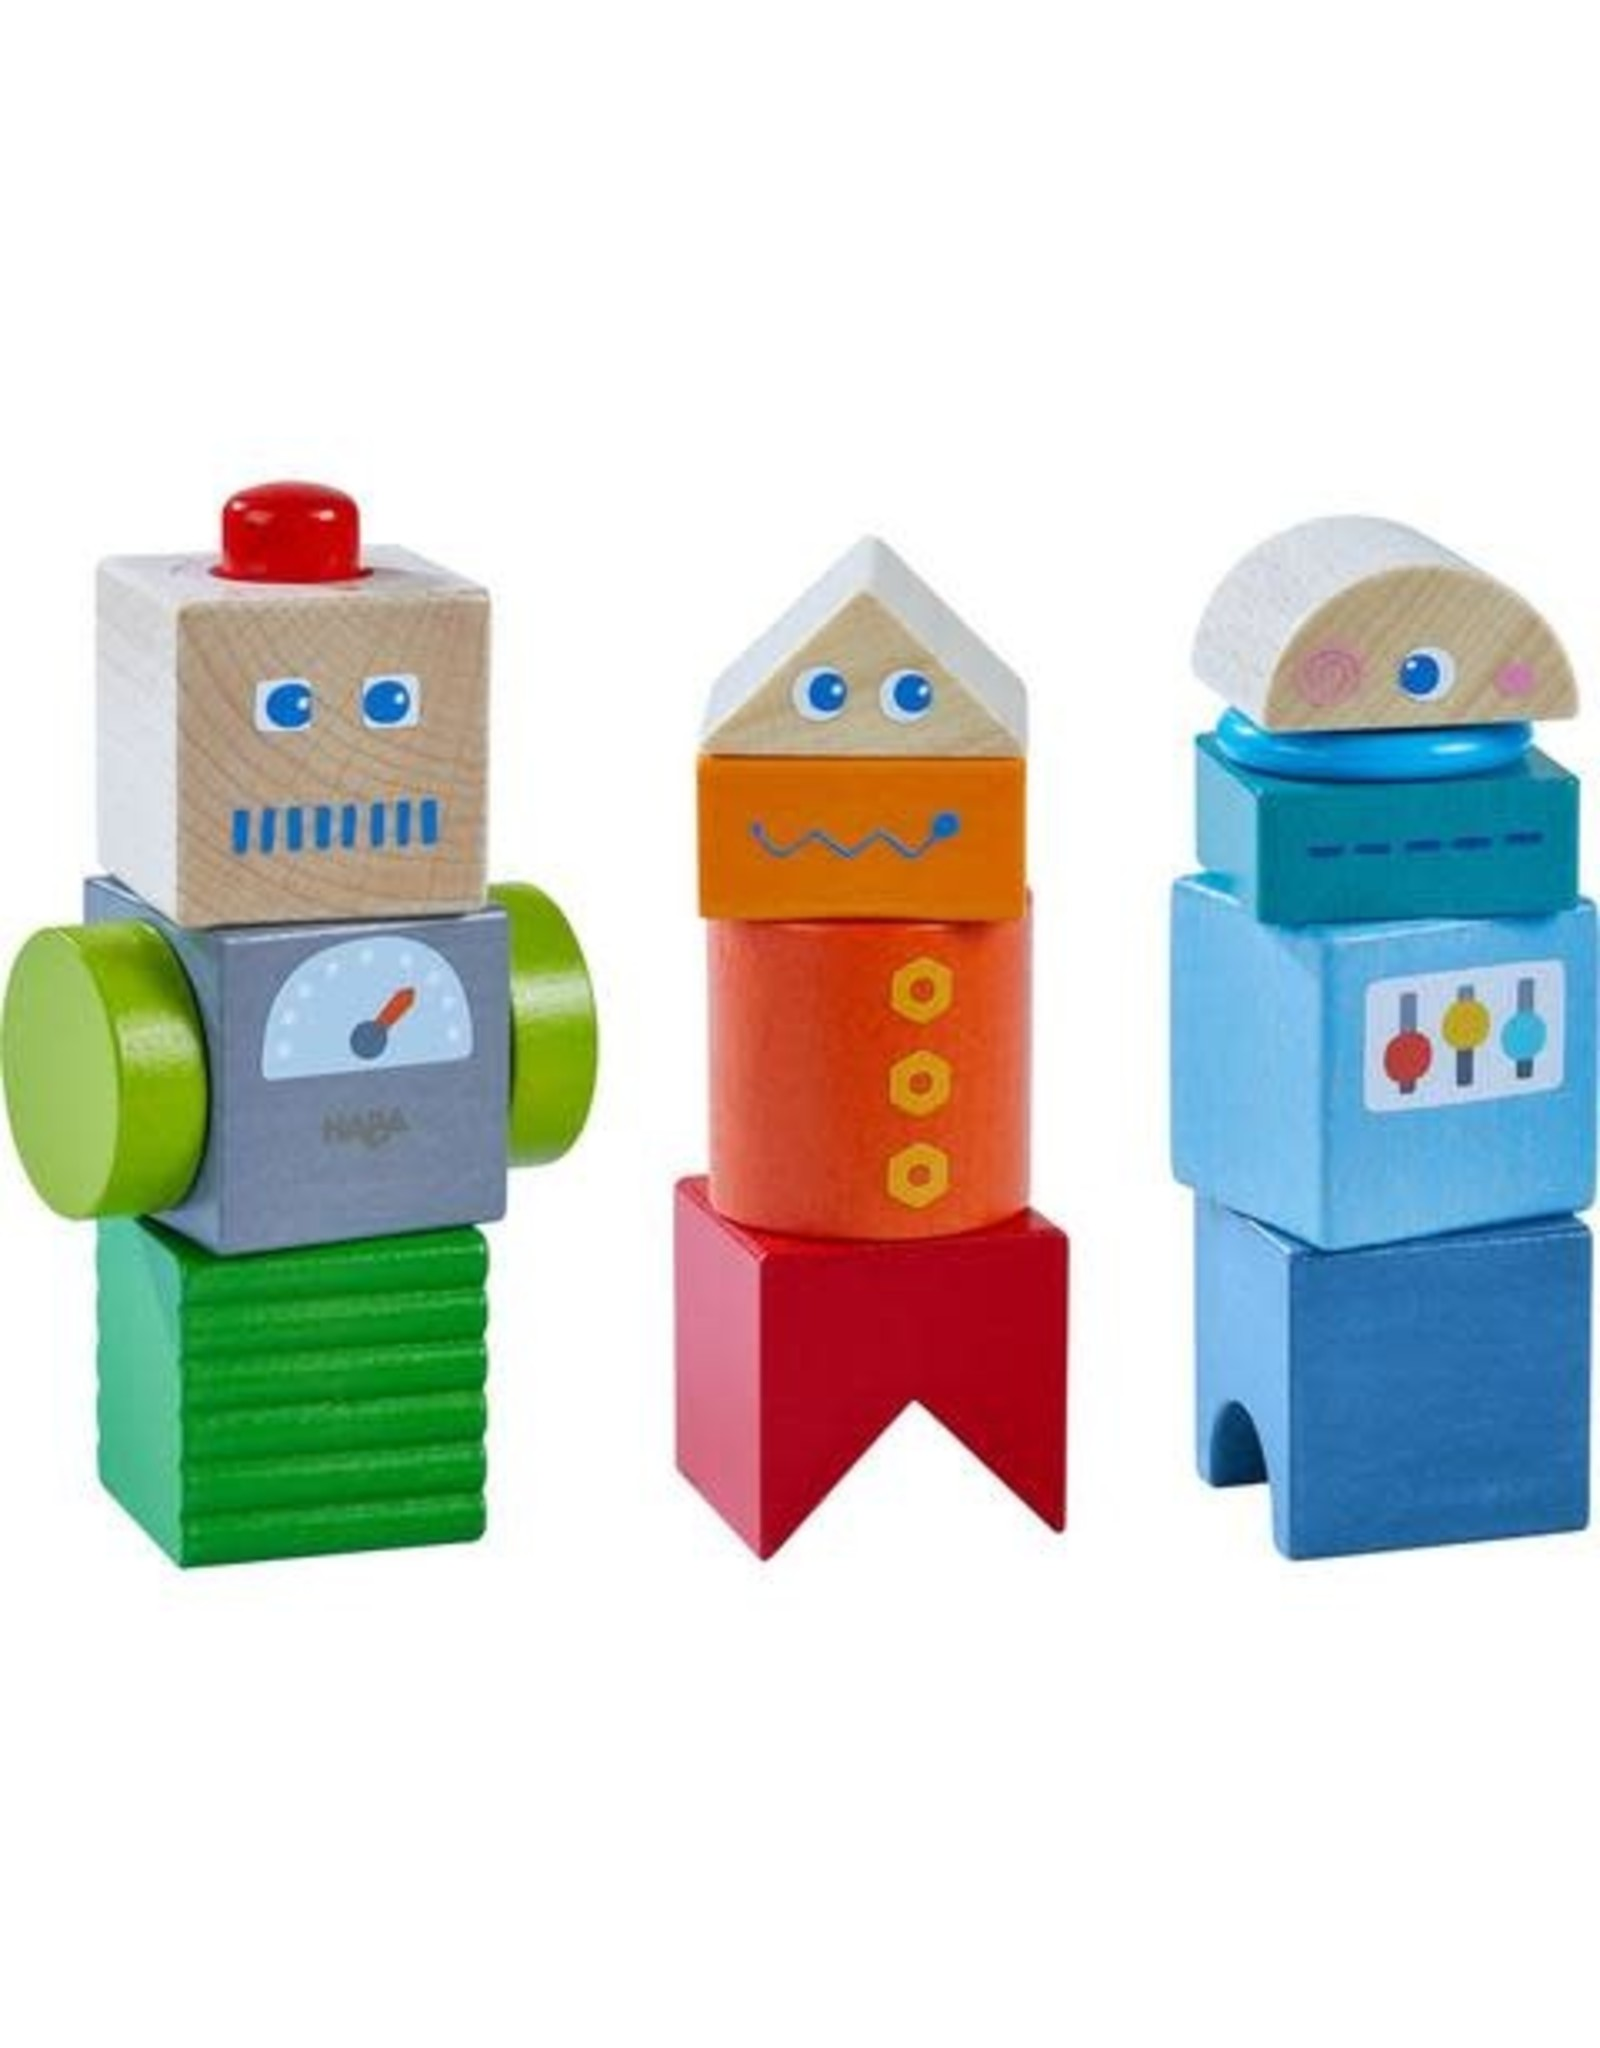 Haba Discovery Blocks Robot Friends